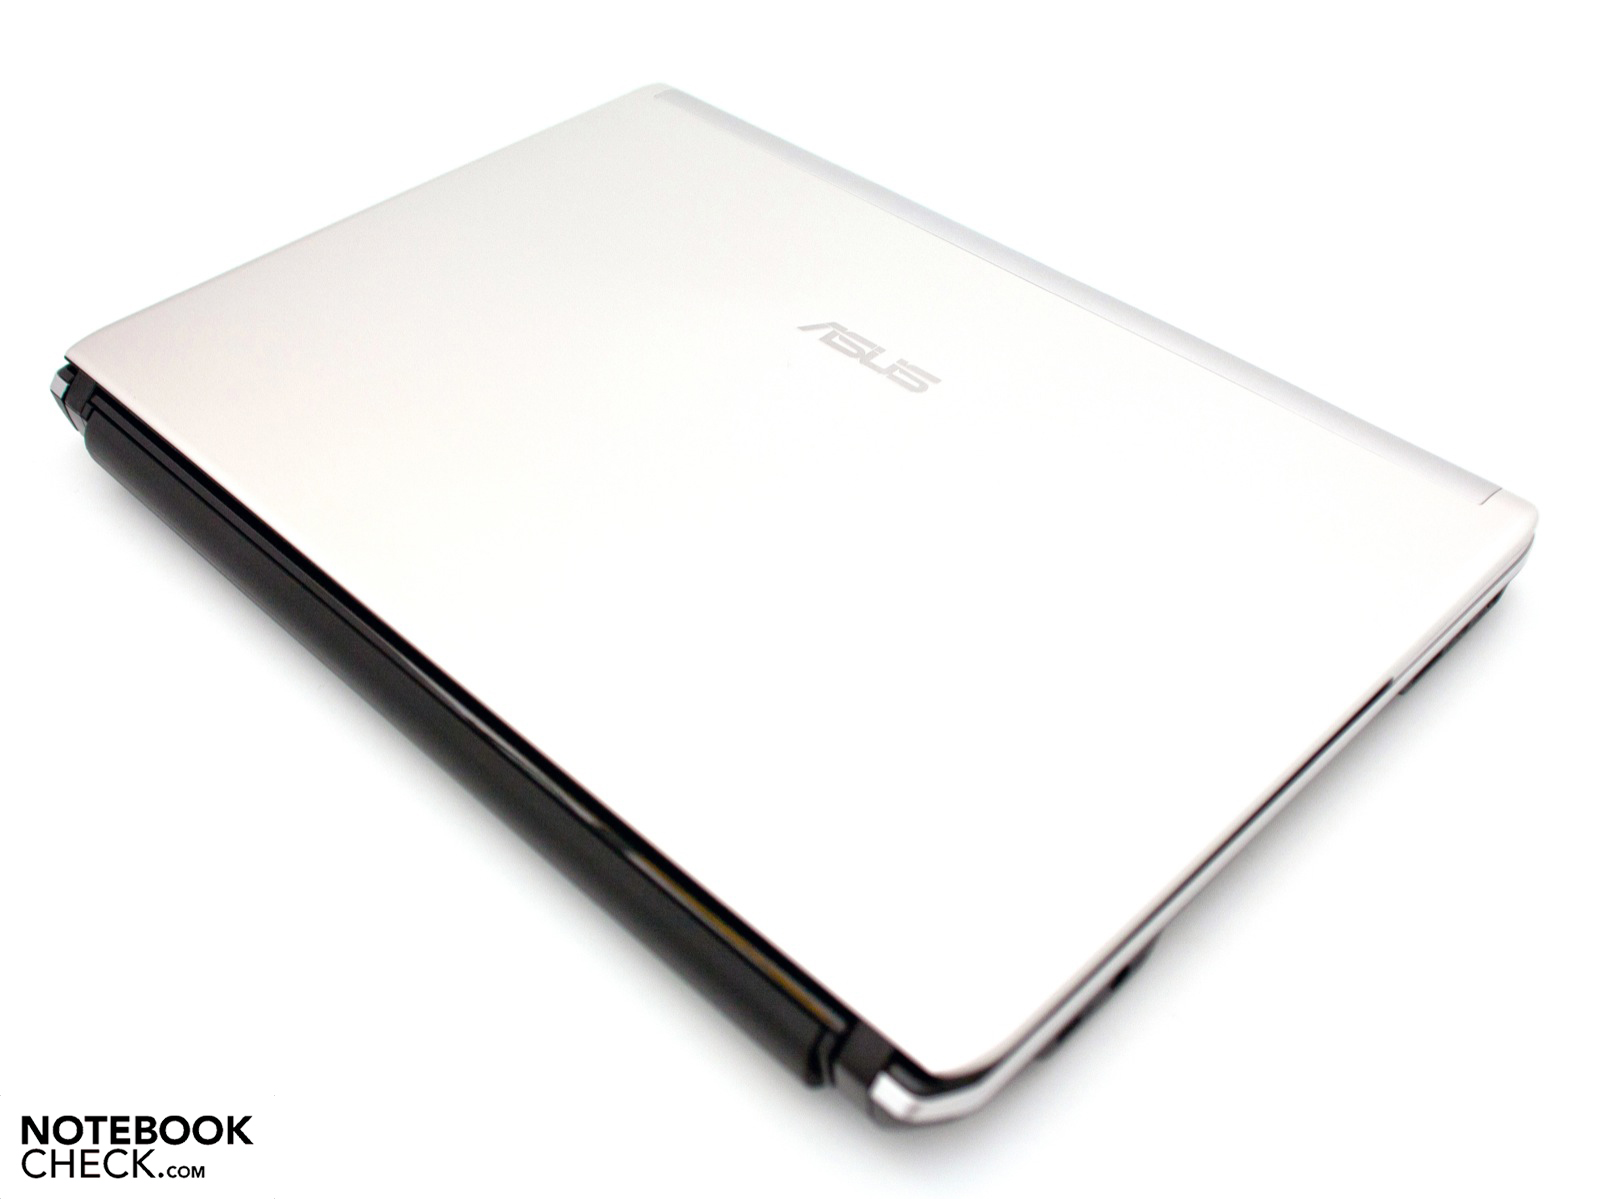 ASUS P31F NOTEBOOK BIOS FLASH 64BIT DRIVER